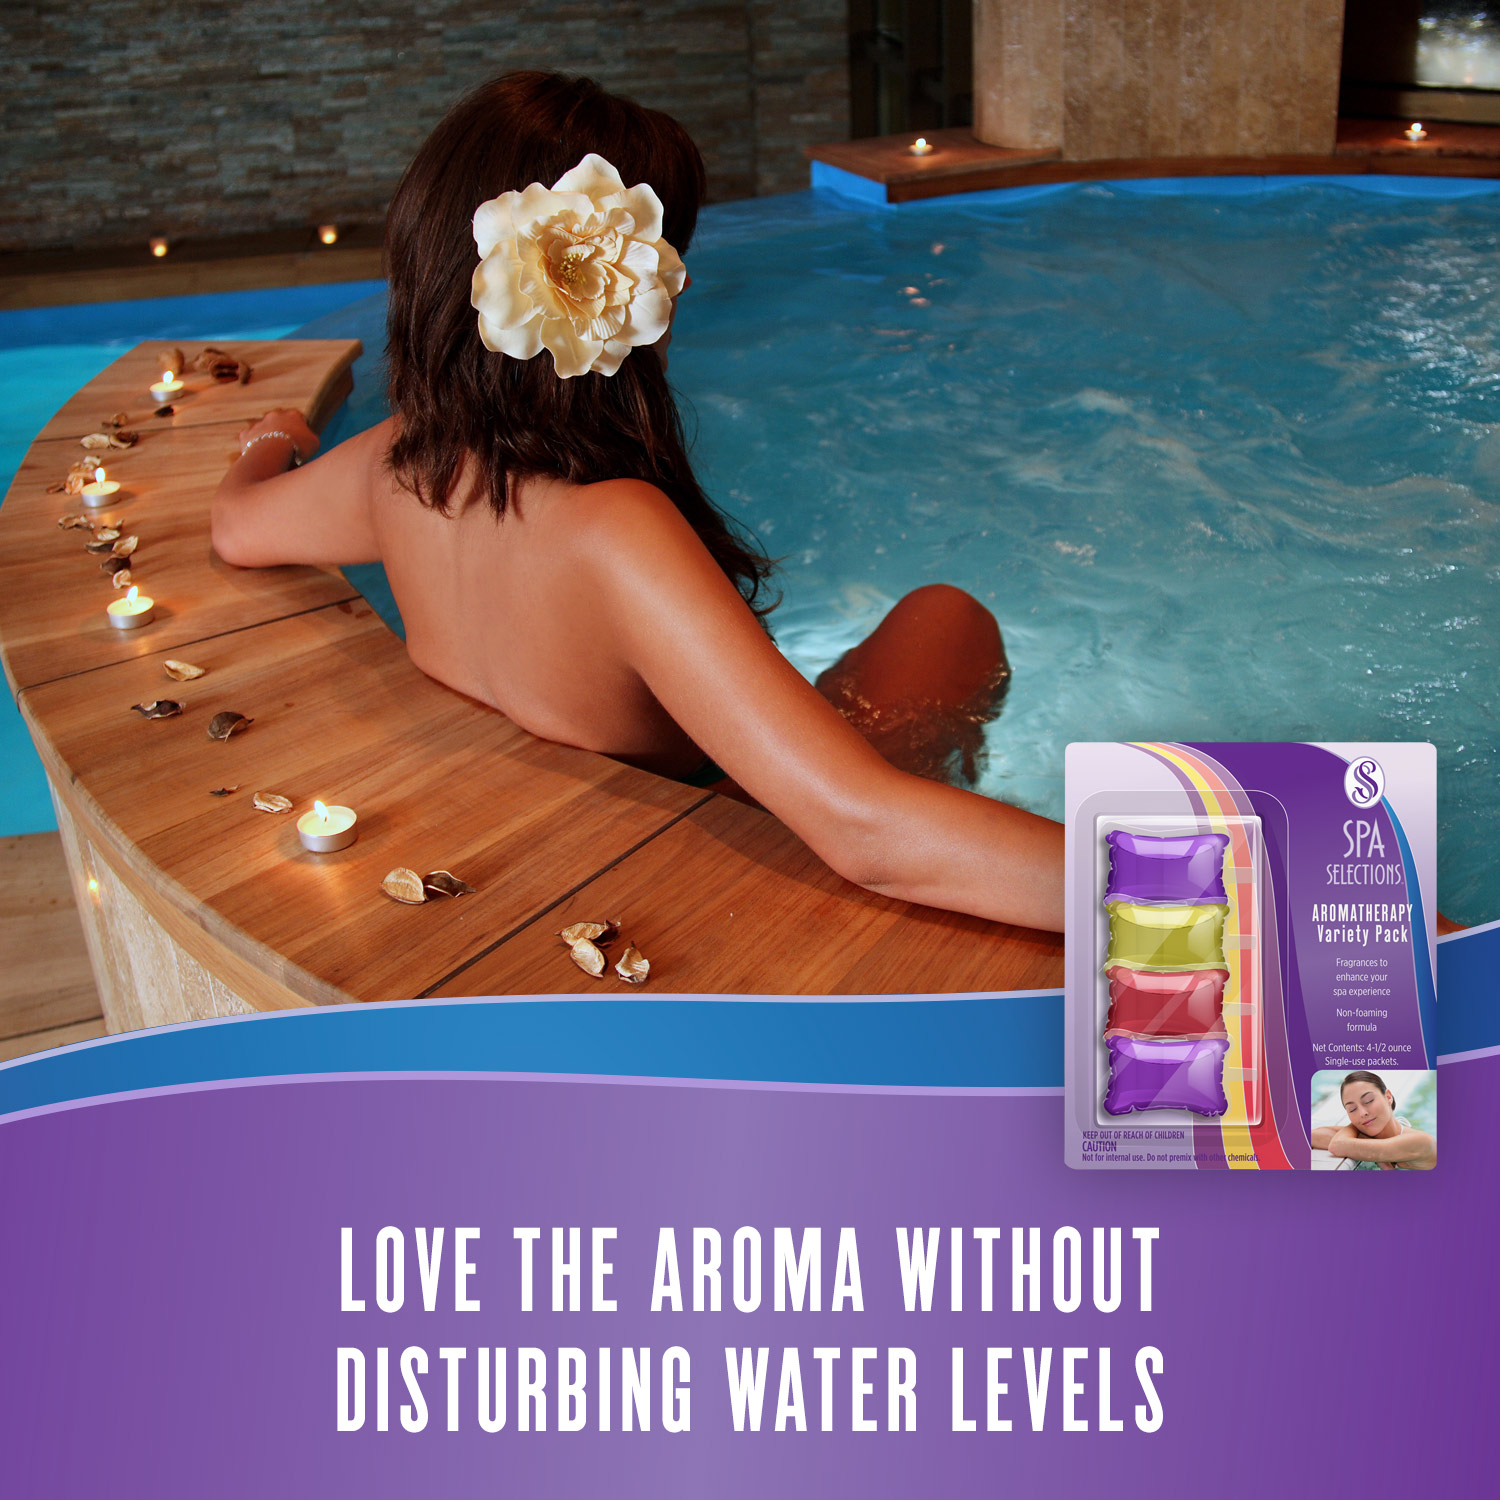 Woman enjoying an indoor spa with wooden siding and Spa Selections aromatherapy. Love the aroma without disturbing water levels.